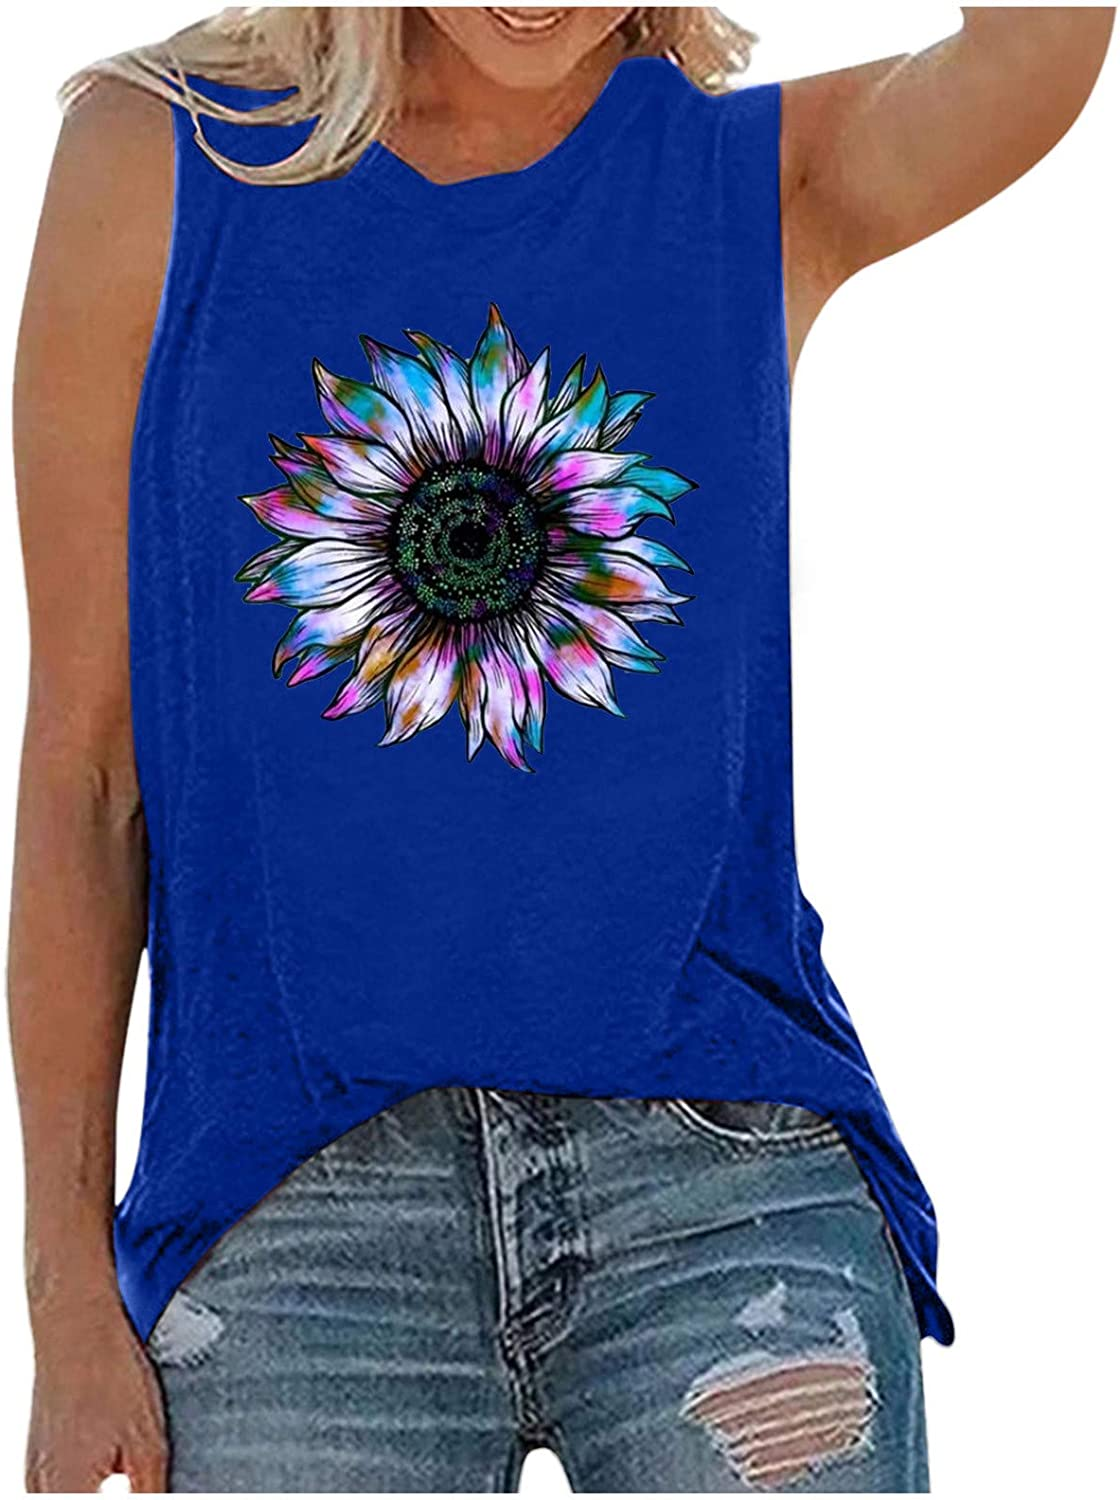 felwors Womens Summer Tops, Summer Tank Tops for Women Graphic Tank Tops Loose Fit Casual Sleeveless Tops Shirts Tees